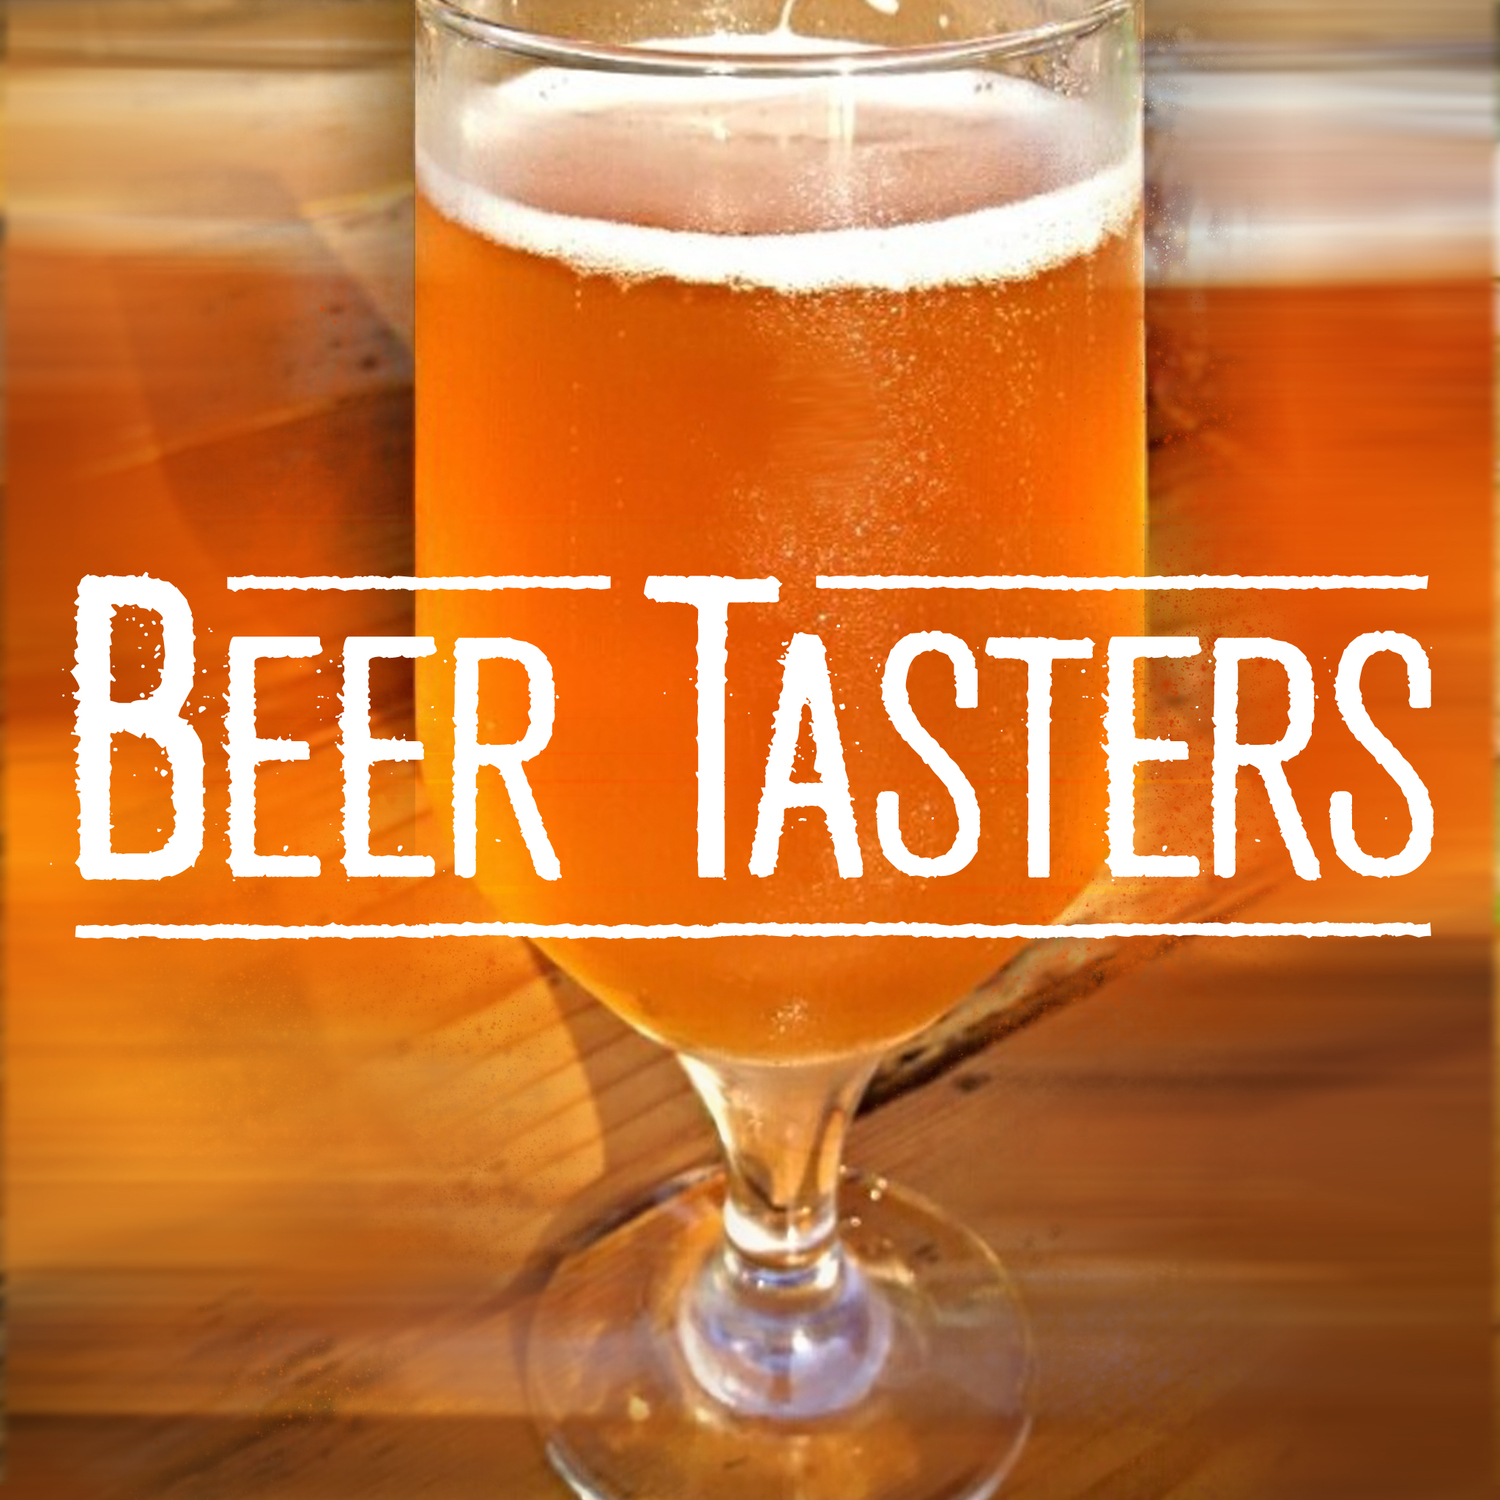 Beer Tasters - Craft Beer & Home Brewing Podcast - Starwalker Studios